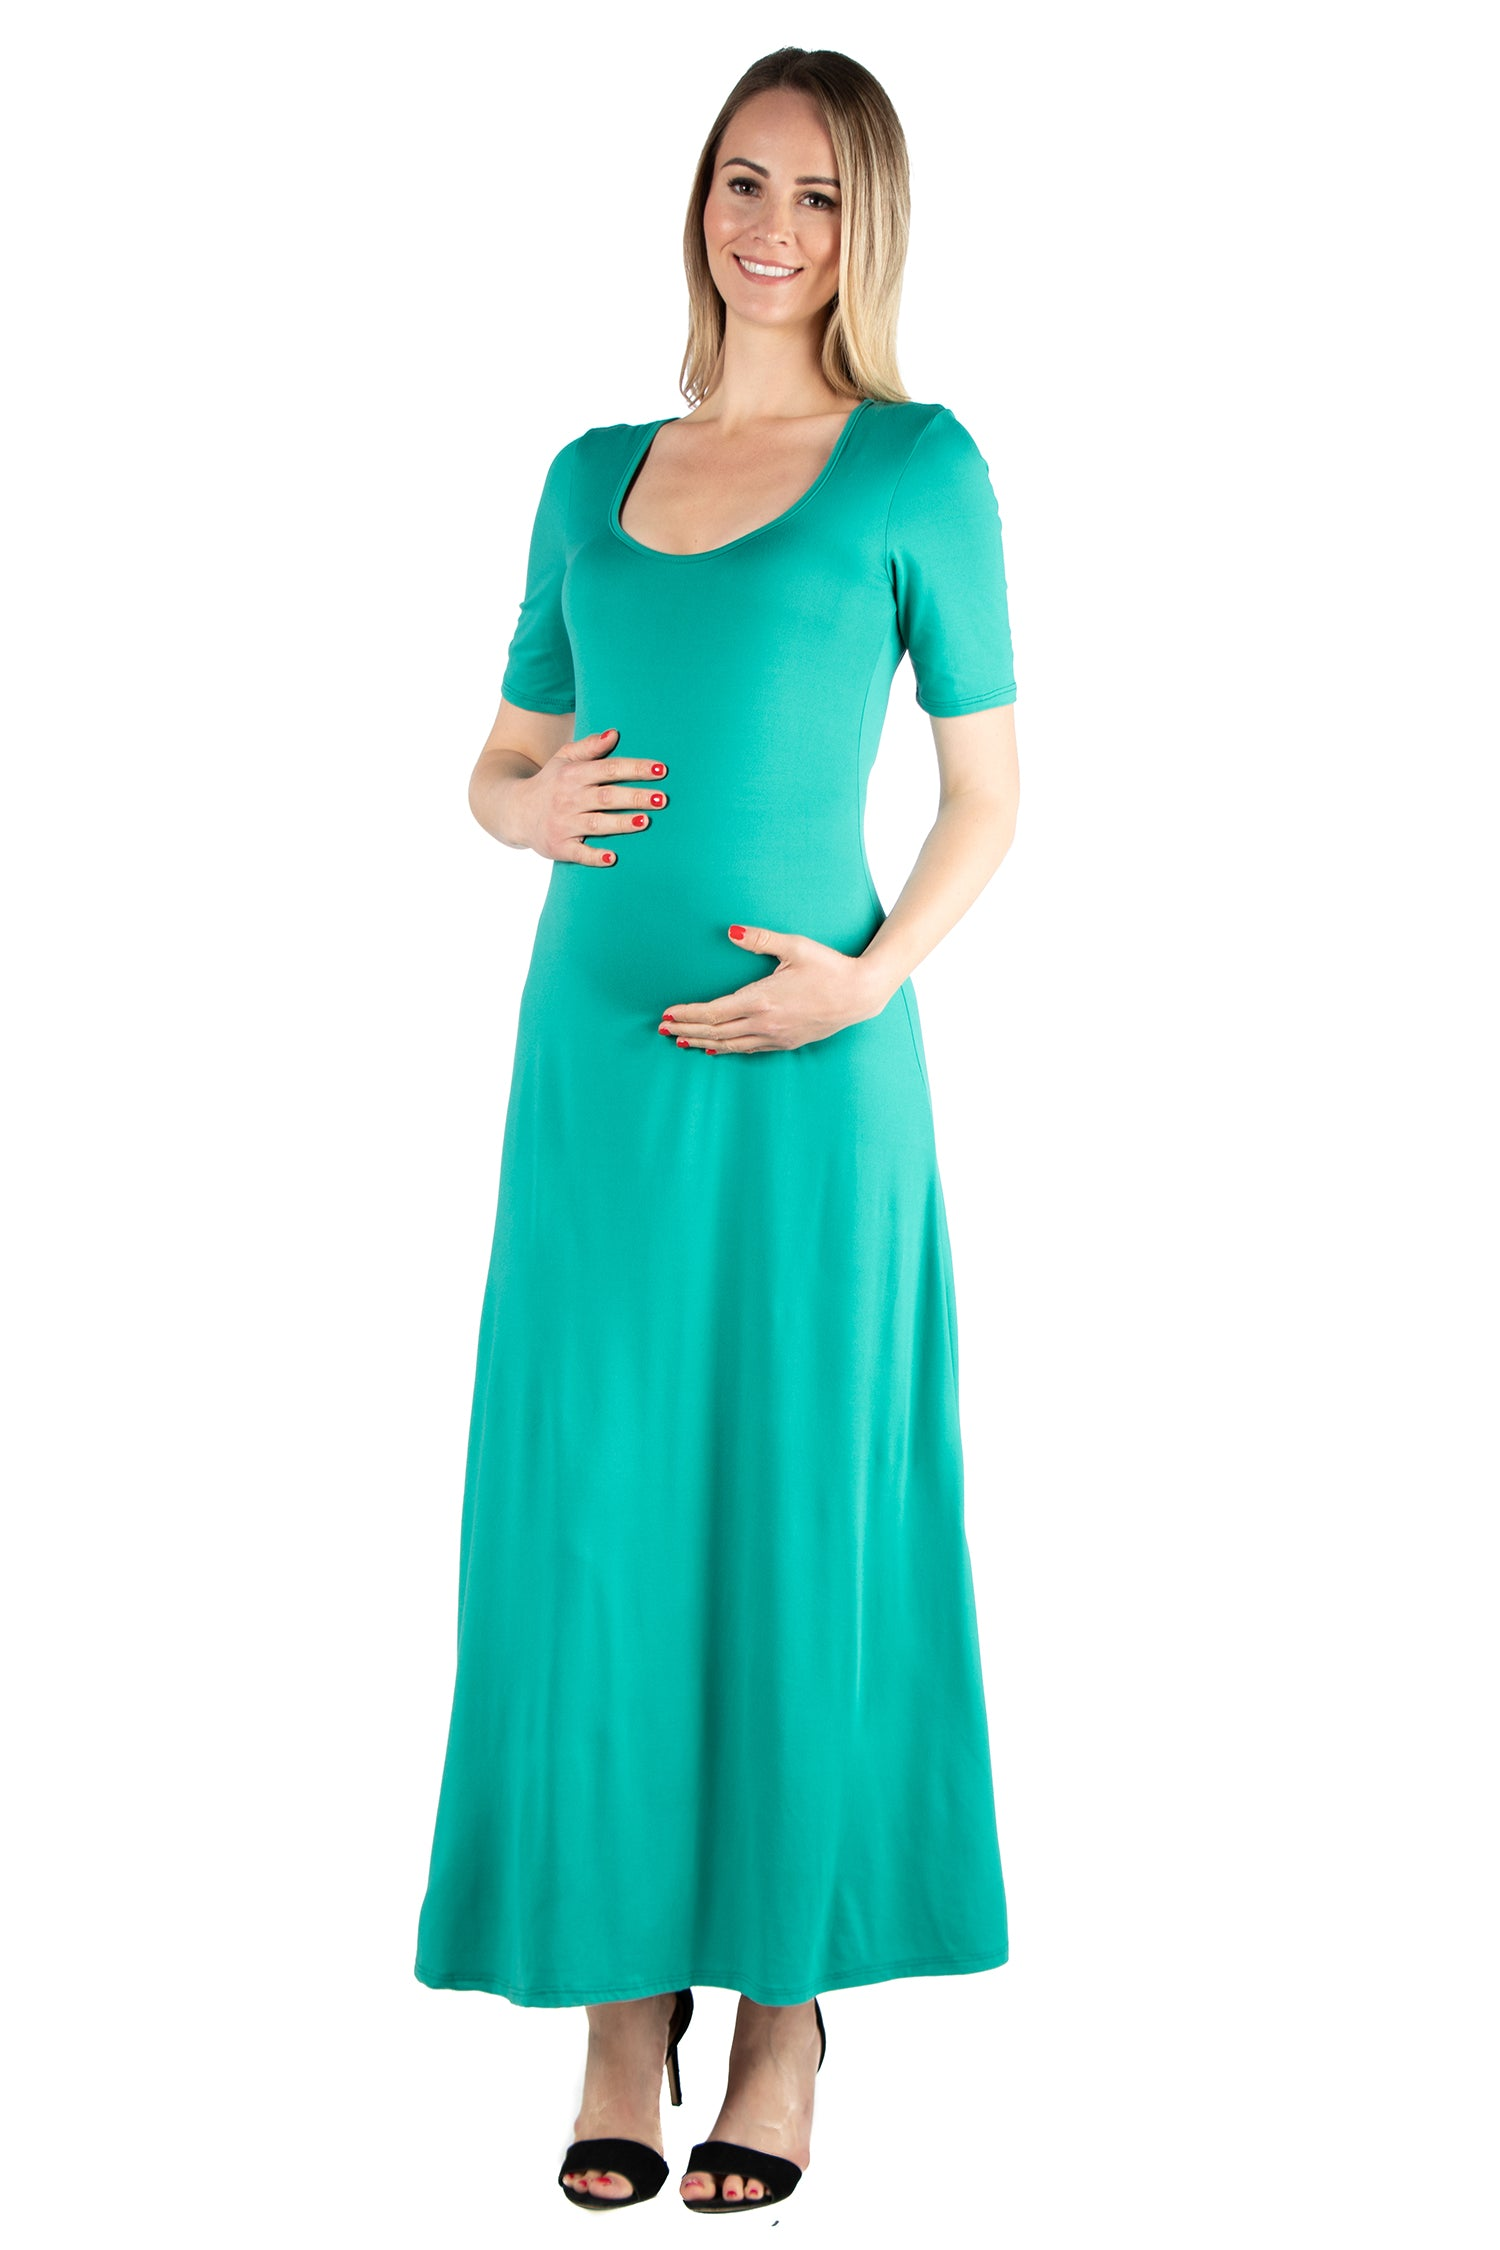 24seven Comfort Apparel Elbow Length Sleeve Maternity Maxi Dress-DRESSES-24Seven Comfort Apparel-BLACK-S-24/7 Comfort Apparel